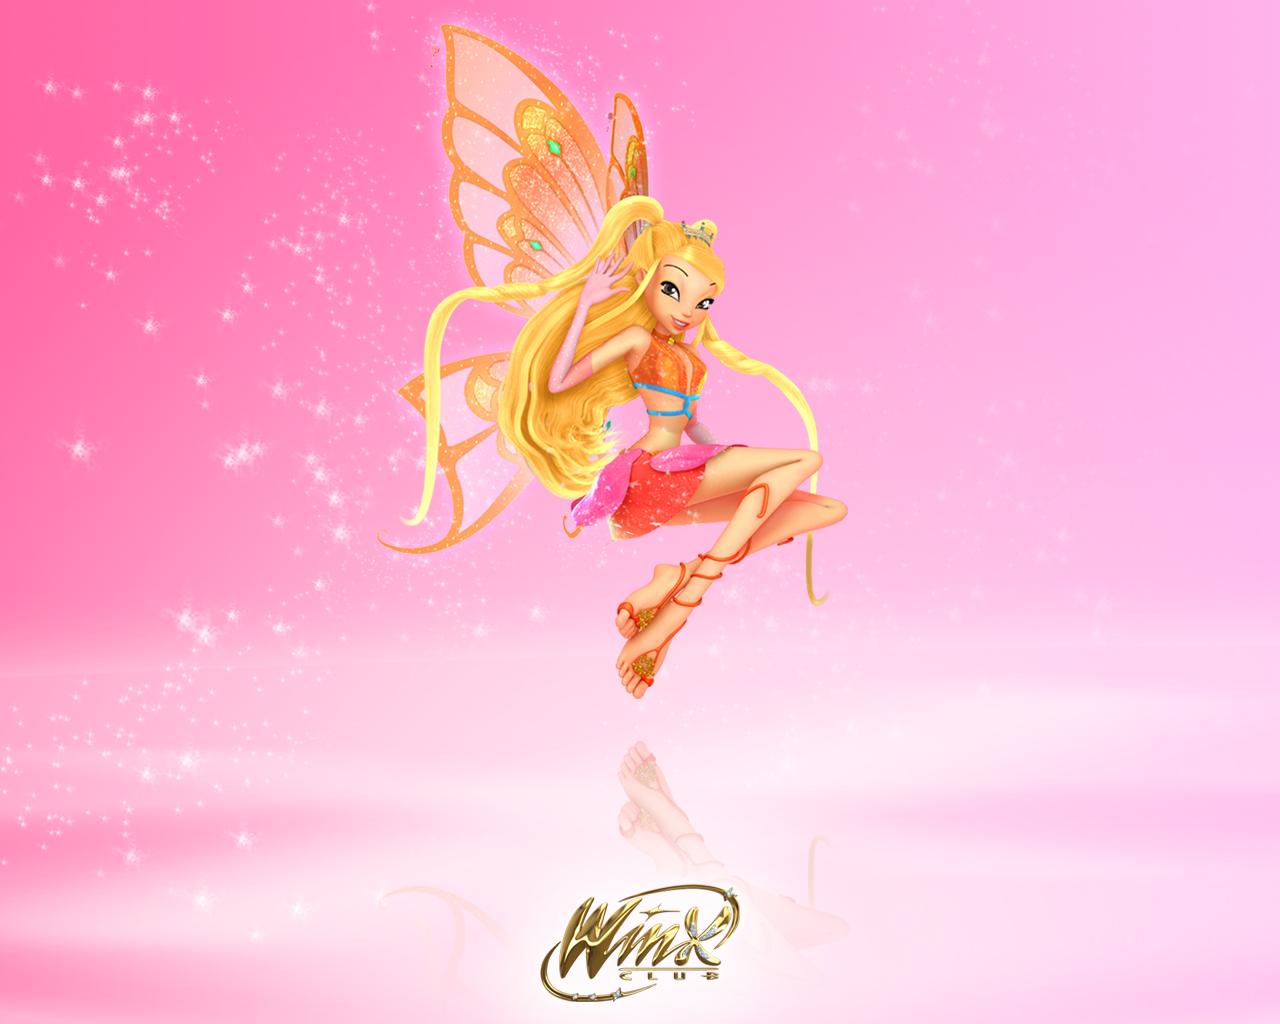 Pin Winx Club Httphawaiidermatologycomlegolego Monster Wallpaperhtm Cake On Pinterest